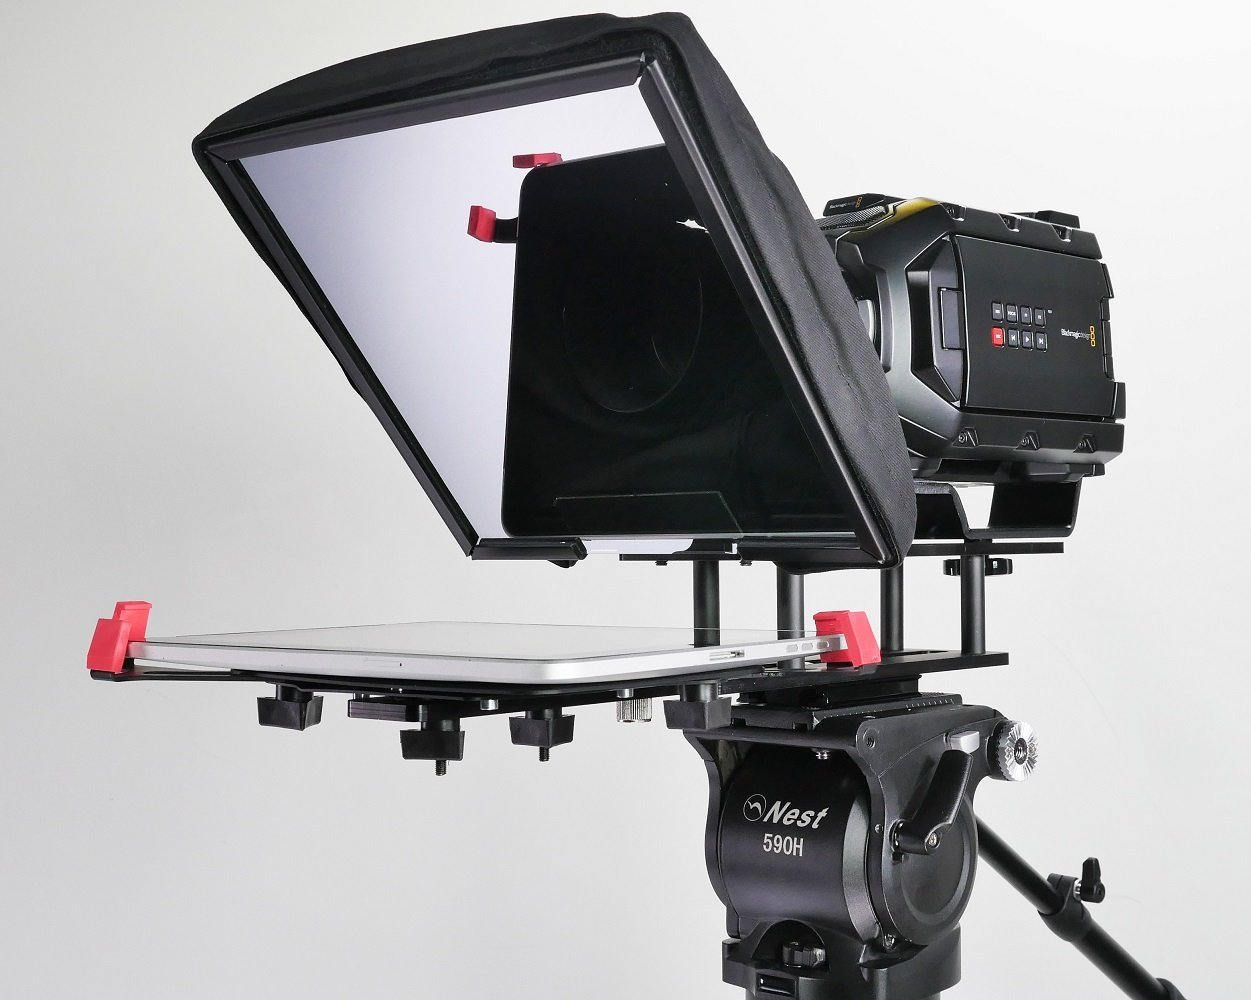 Prompter People Ultralight iPAD teleprompter by Prompter People